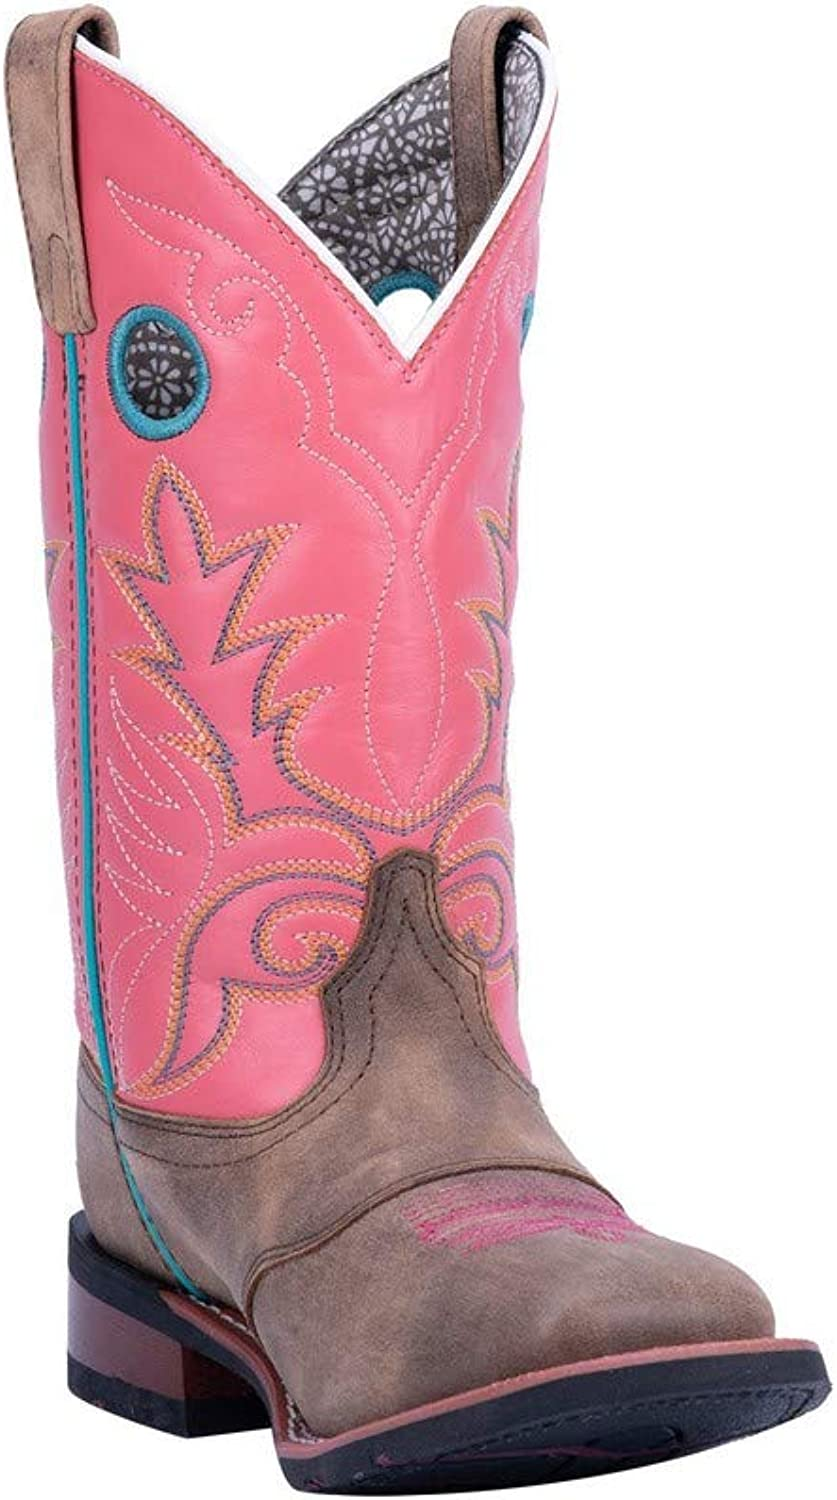 Laredo Broad Square Toe Cowgirl Boots, Sand Pink